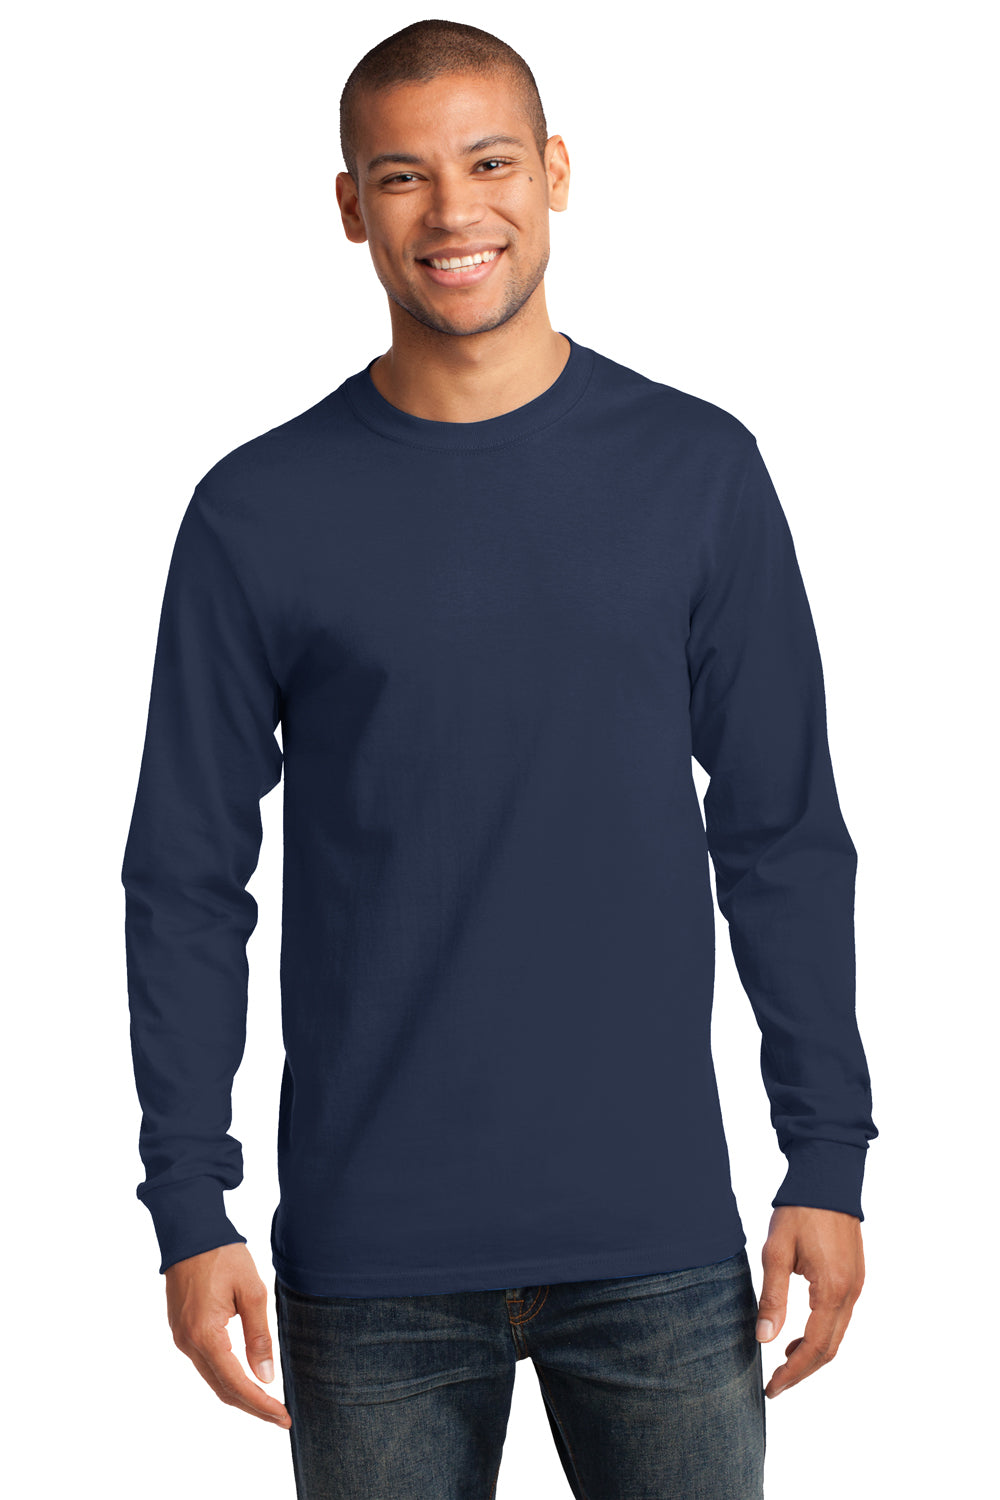 Port & Company PC61LS Mens Essential Long Sleeve Crewneck T-Shirt Navy Blue Front